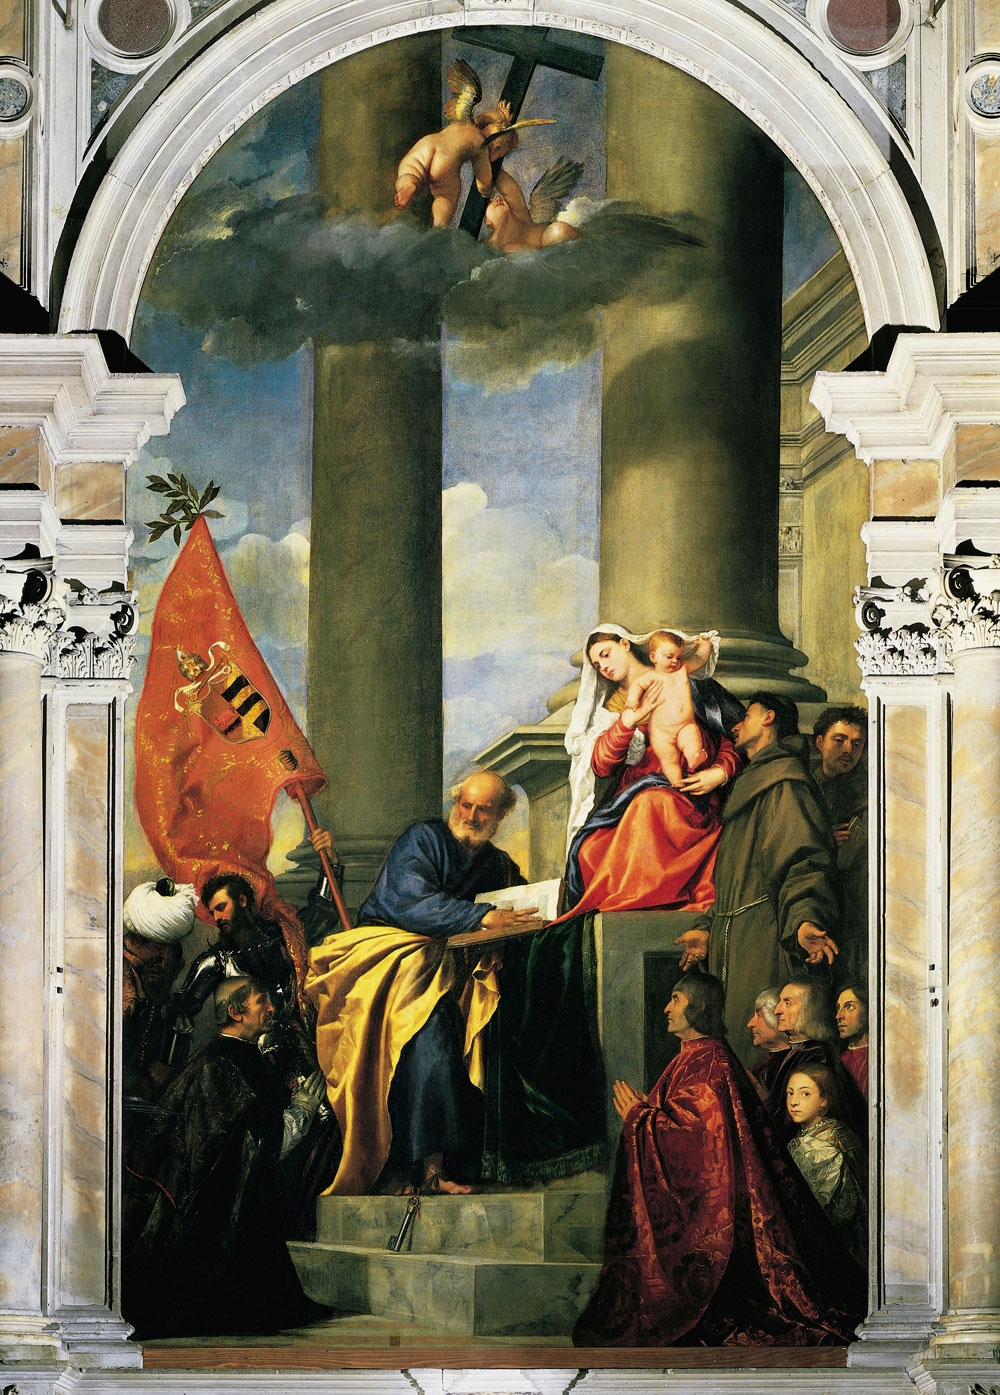 Madonna of the Pesaro Family by Titian